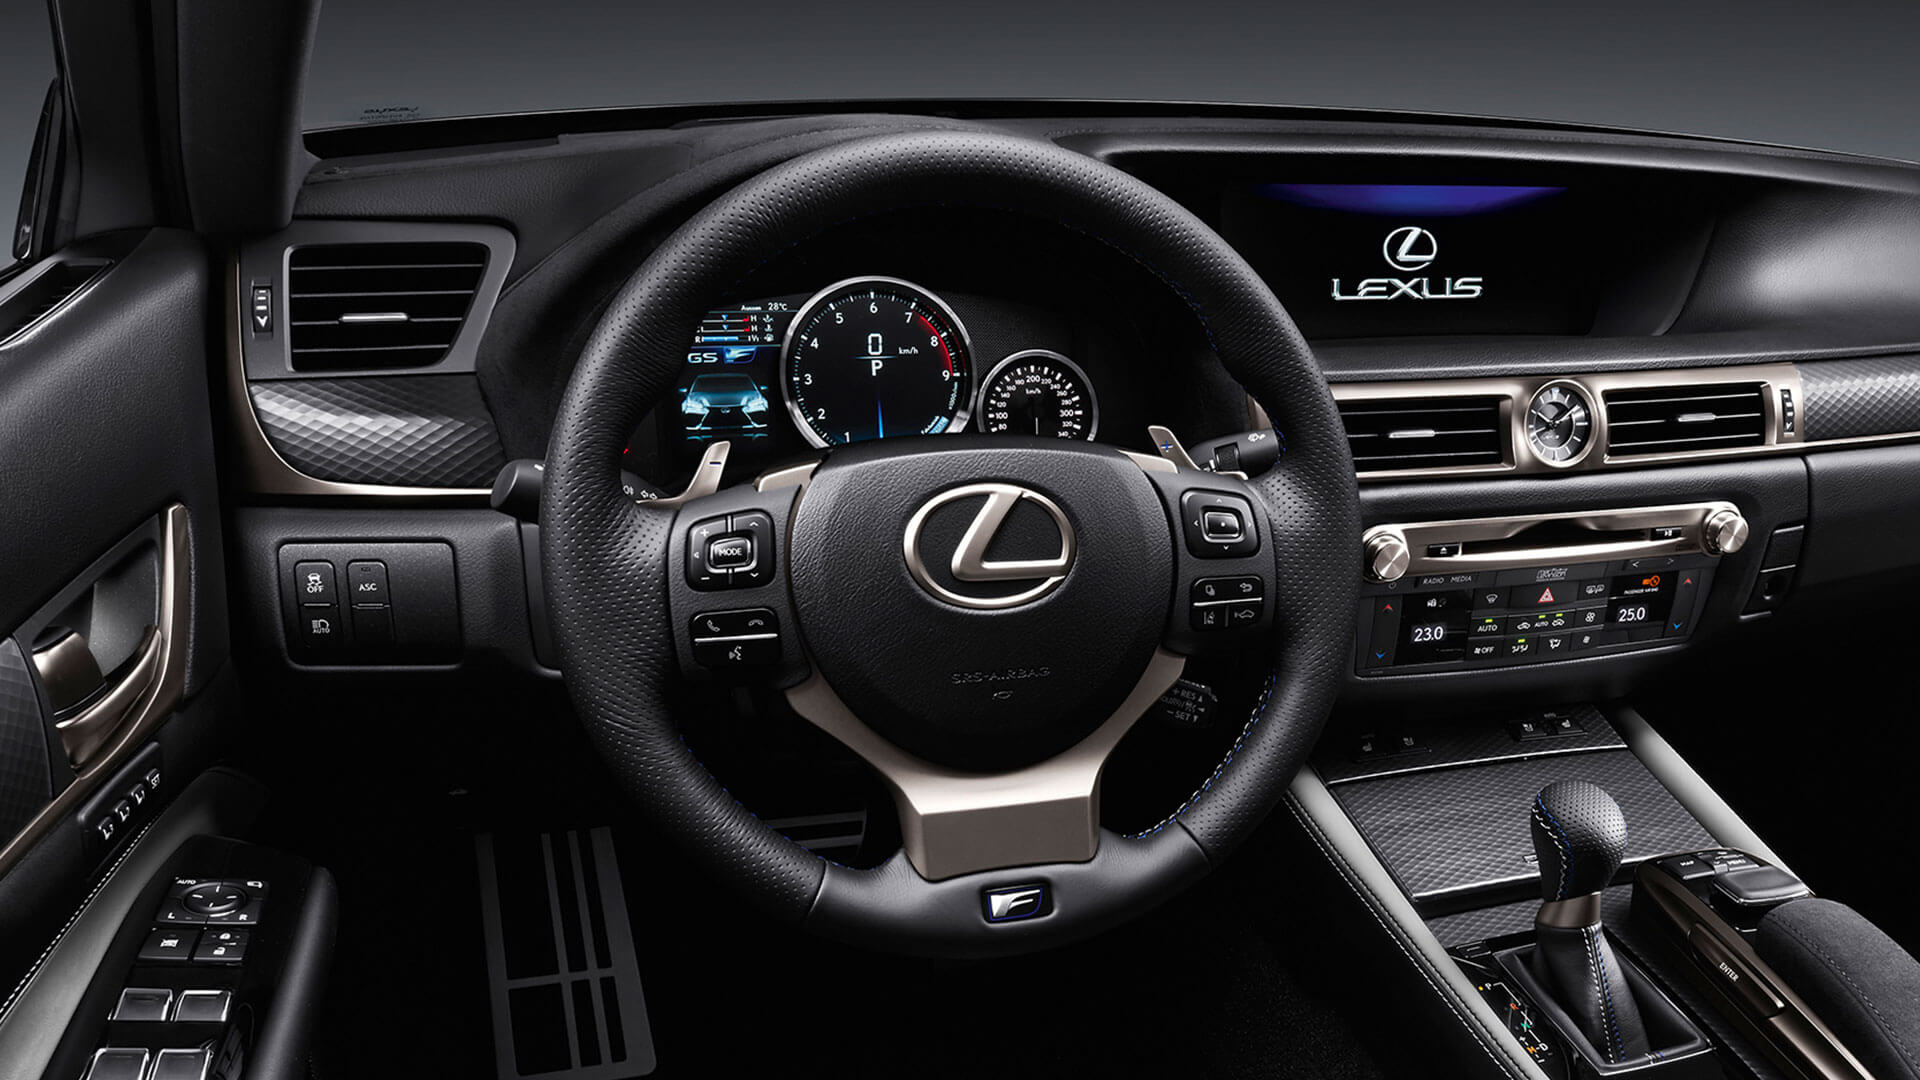 2017 lexus gs f features sports steering wheel